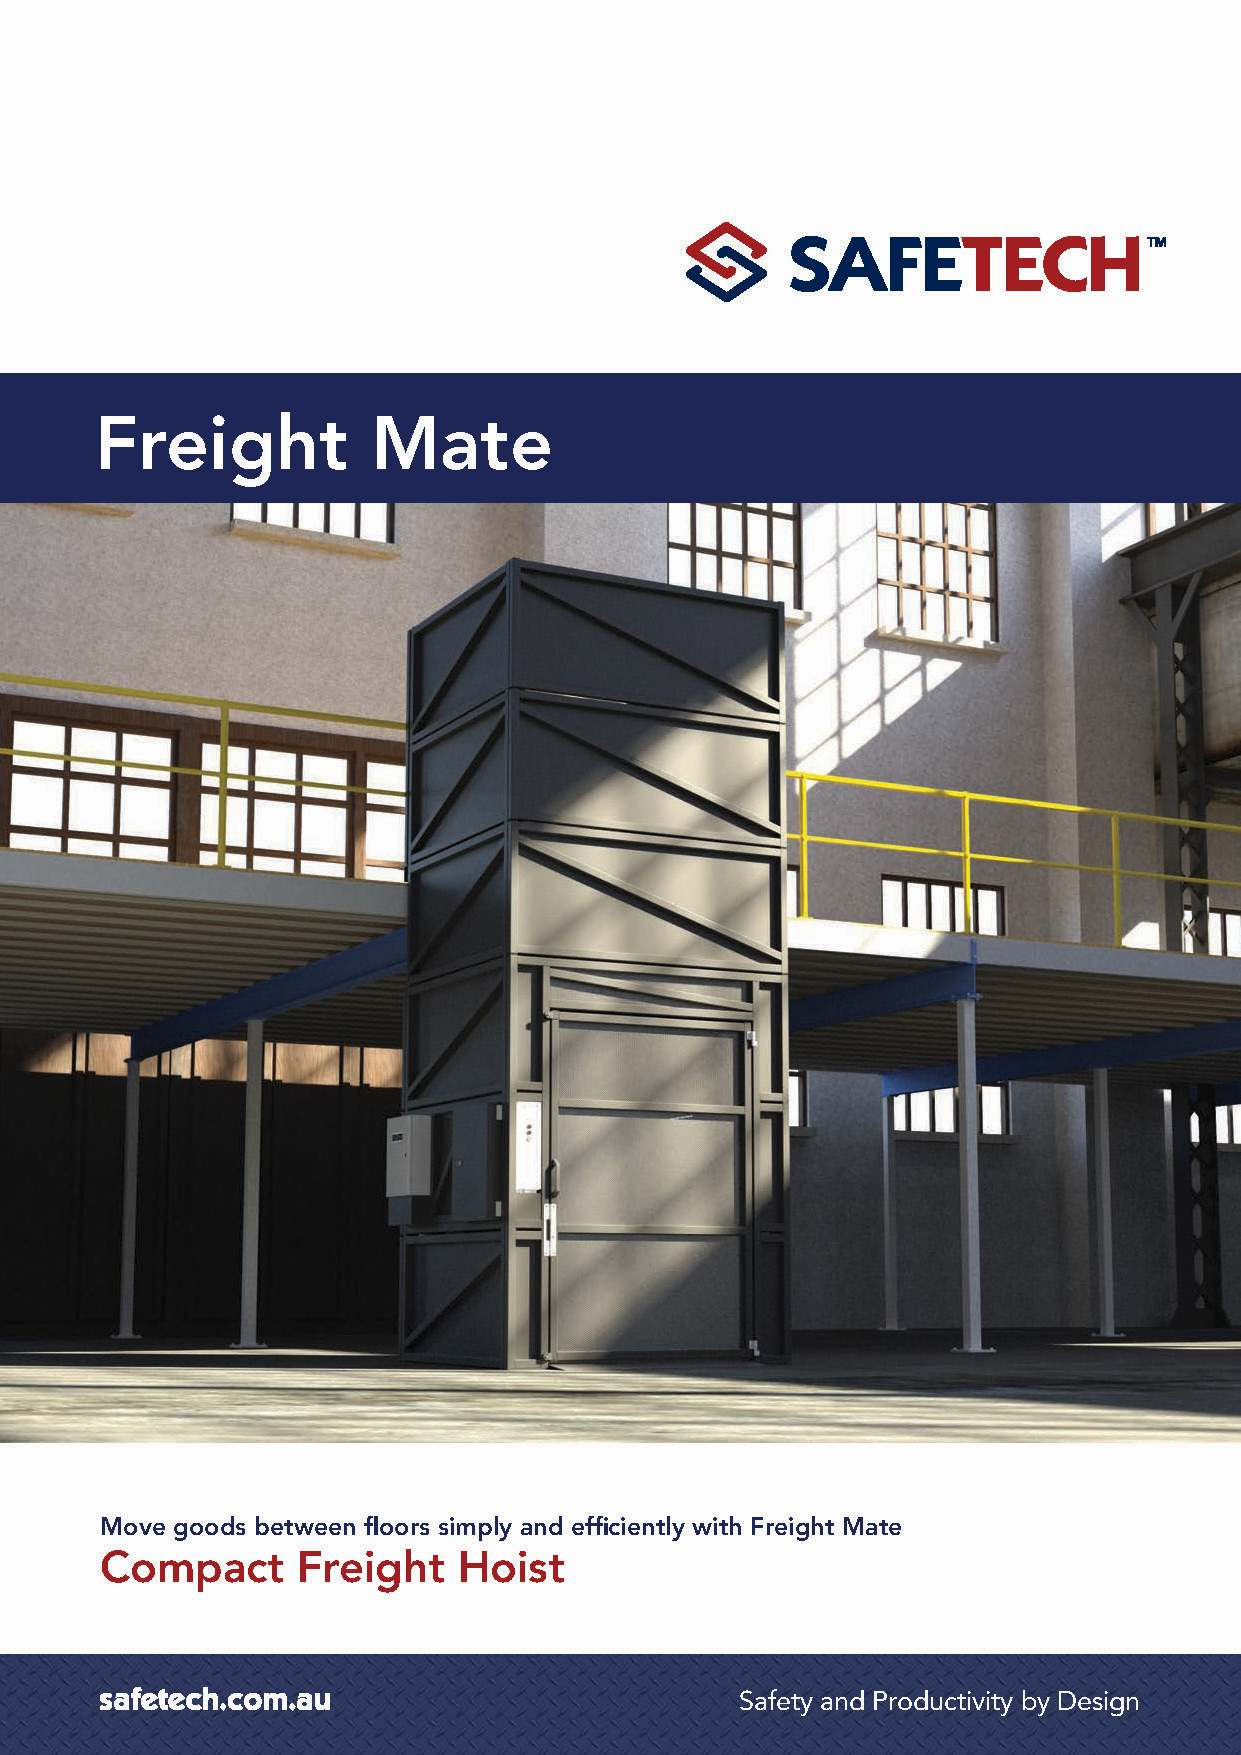 Safetech-FreightMate-A4_v1.4_Page_1